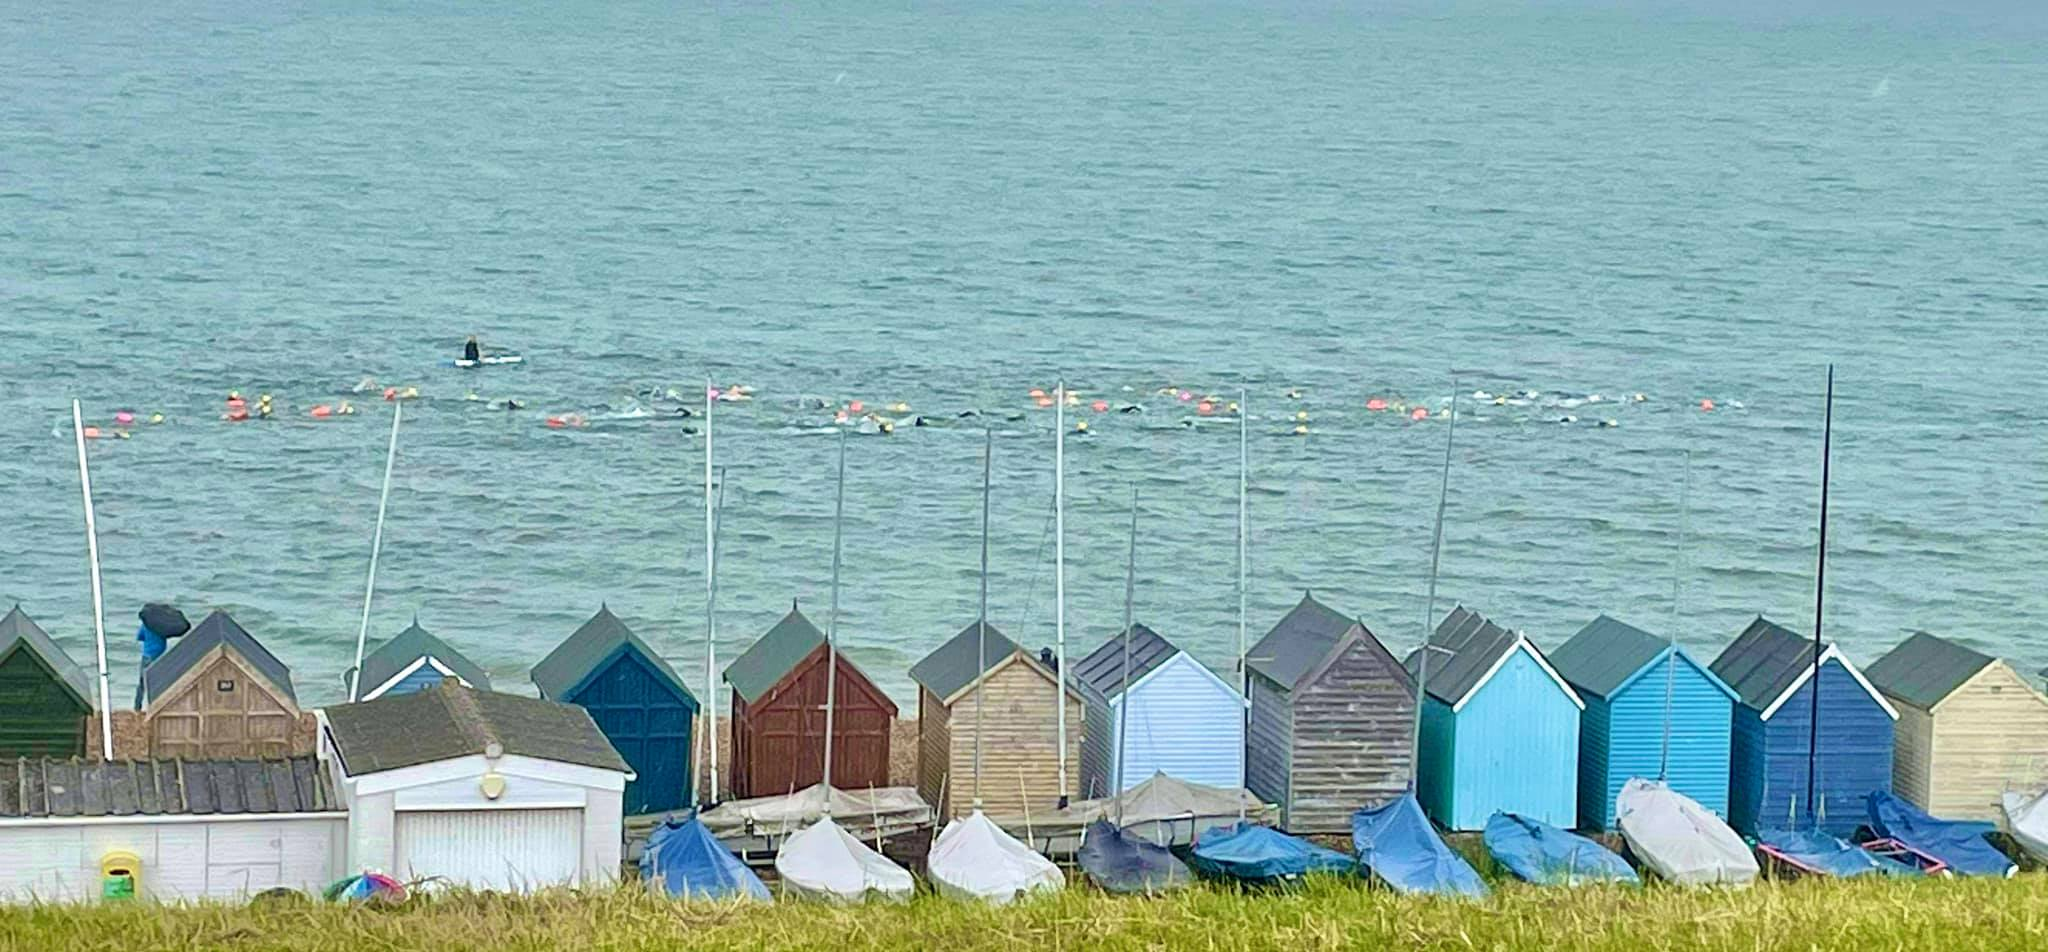 Beach huts with line of swimmers in the seas behind